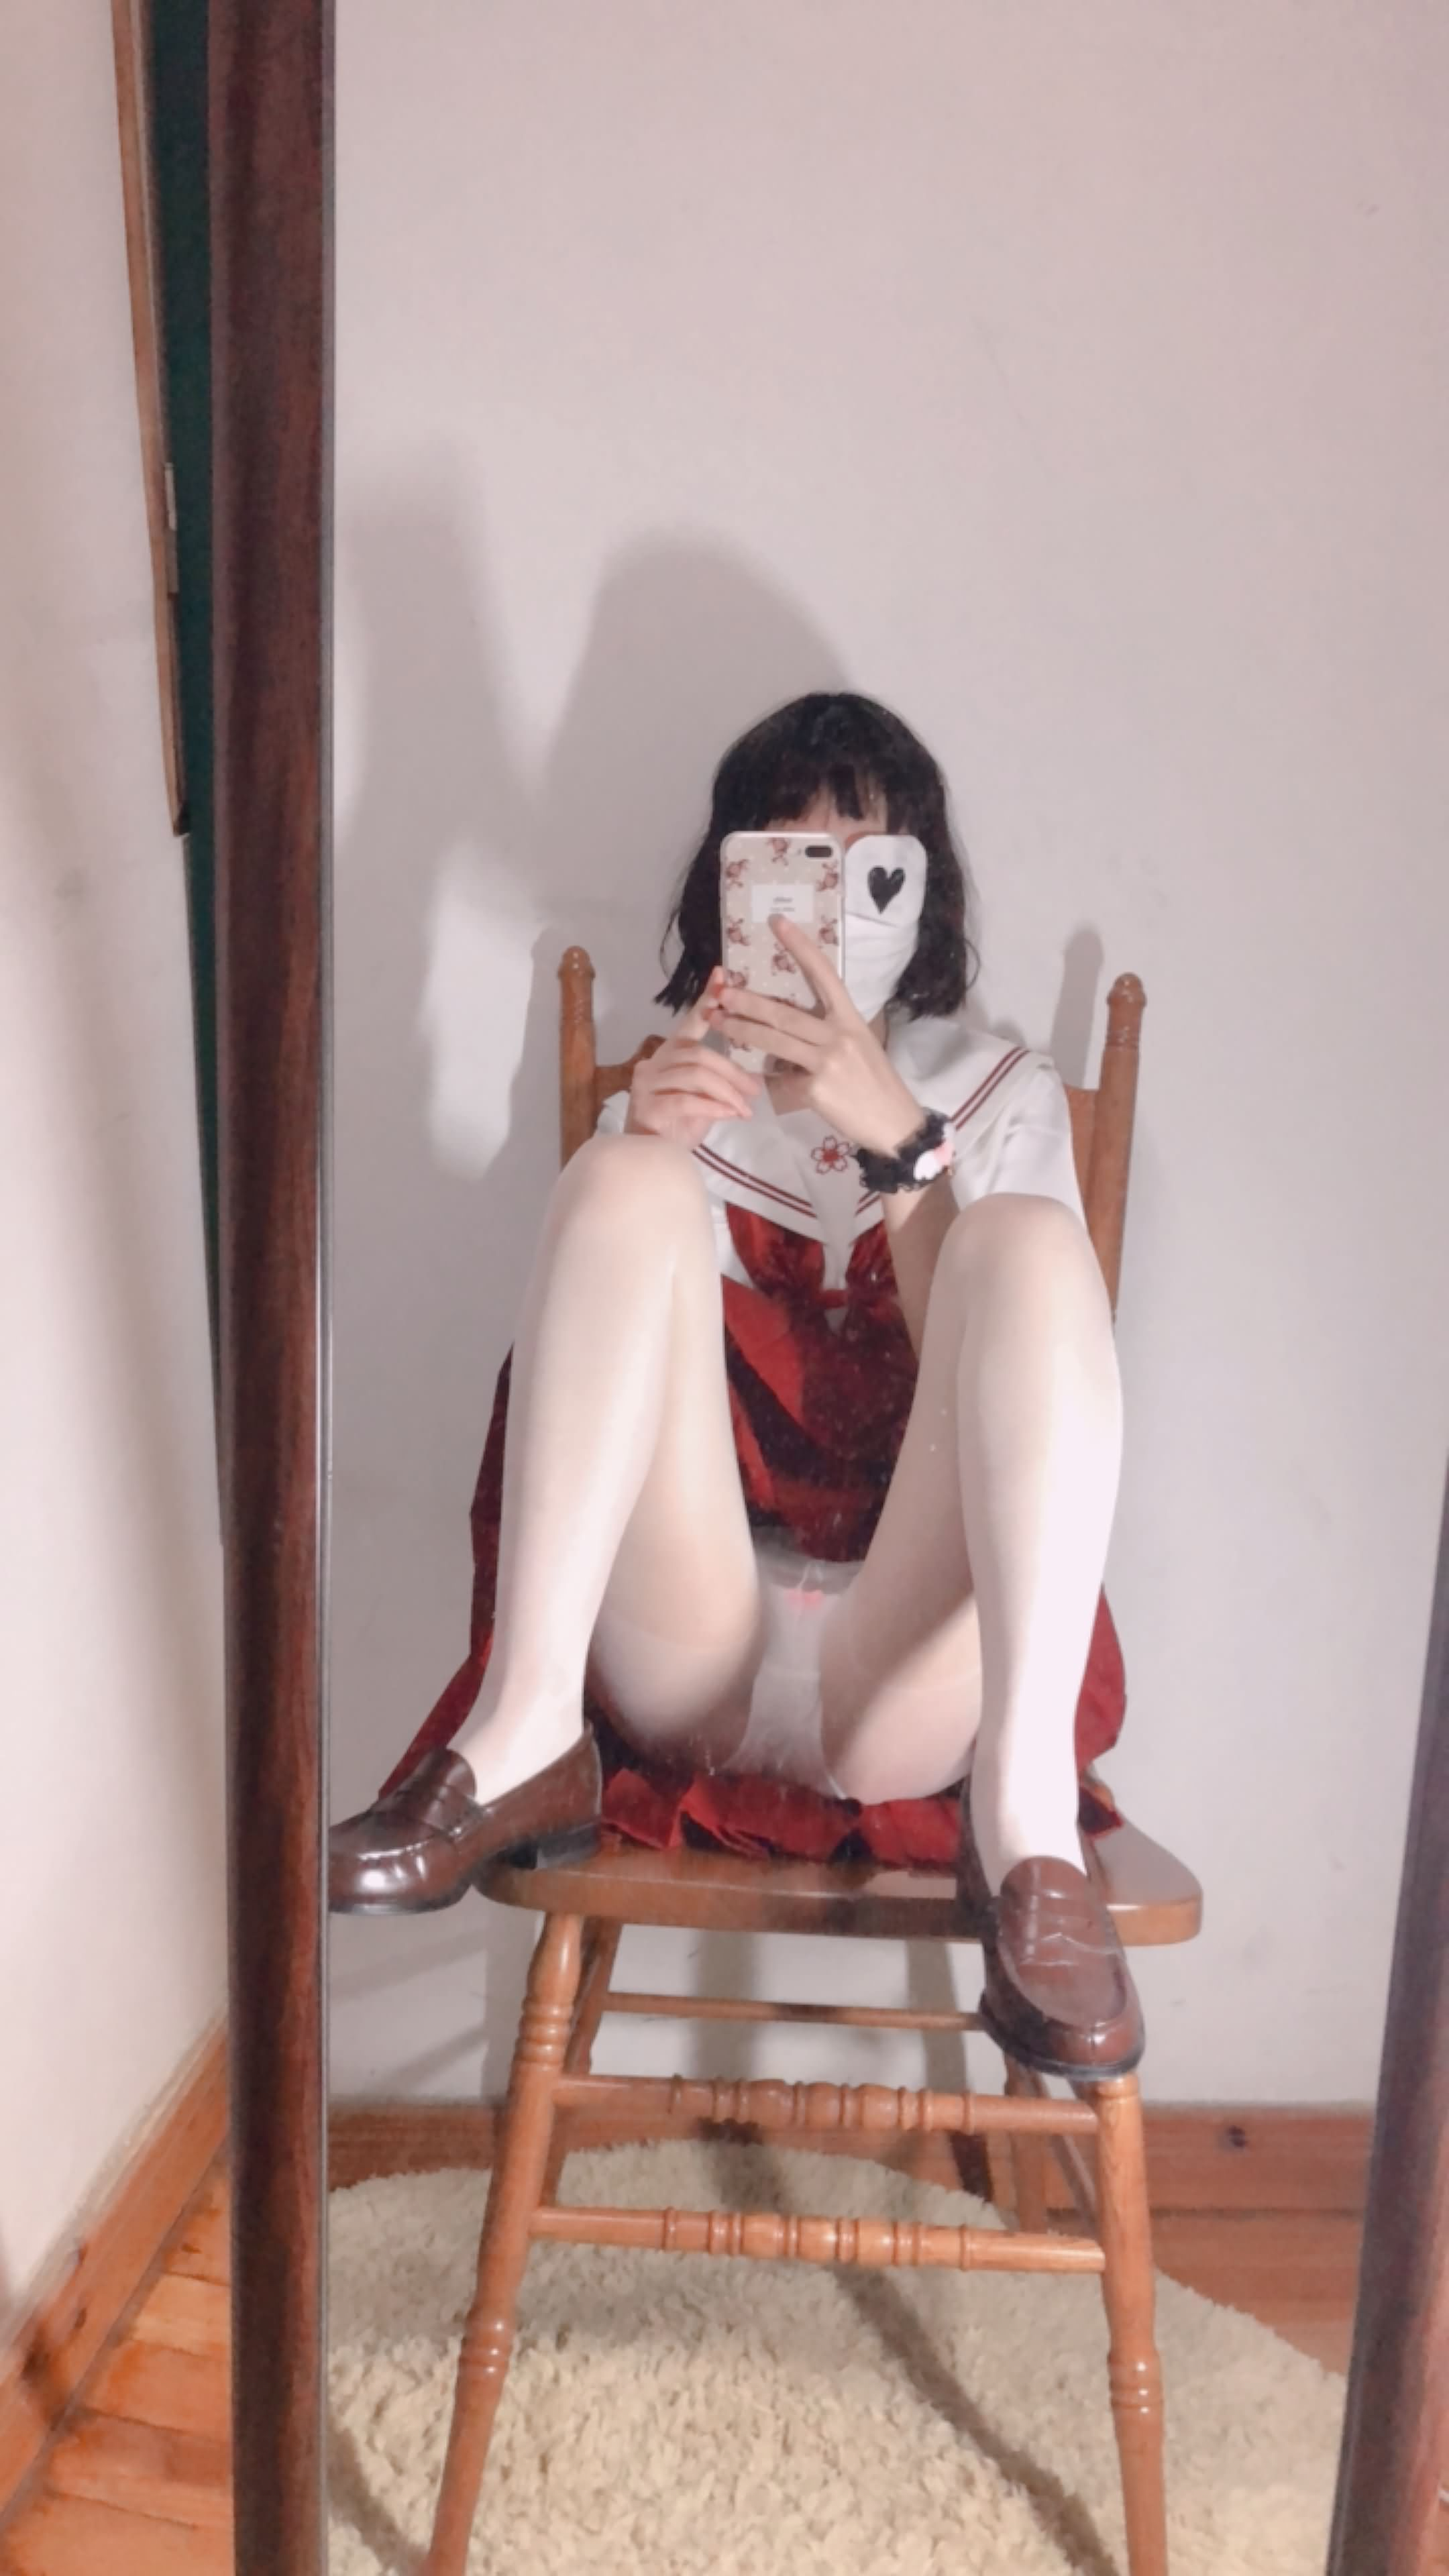 20 - Cosplay red JK uniform white stockings sweet pussy butt 小结巴-红色jk制服白丝 95P